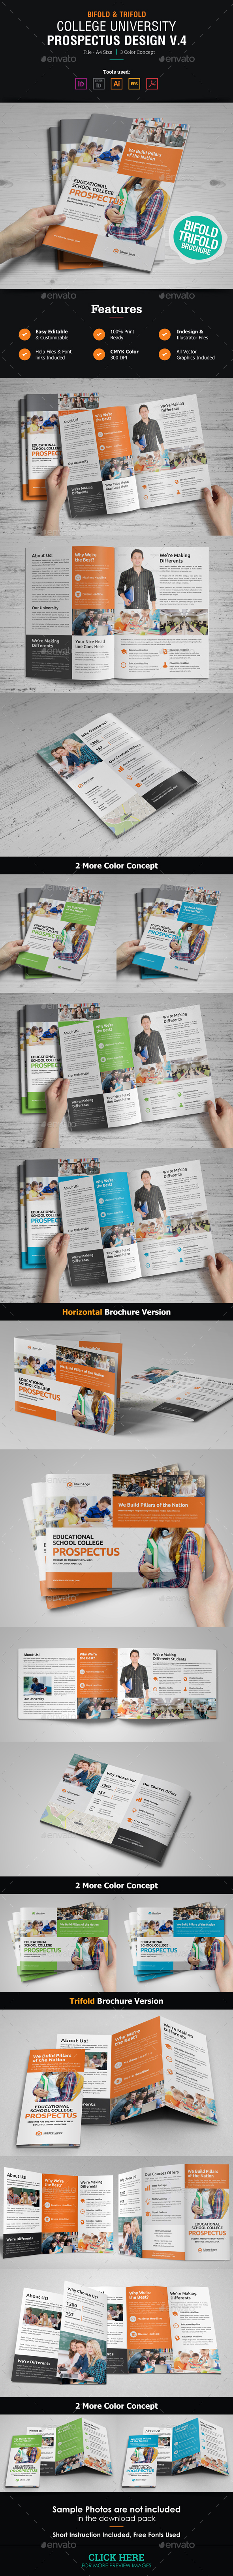 GraphicRiver College University Prospectus Brochure v4 21060170